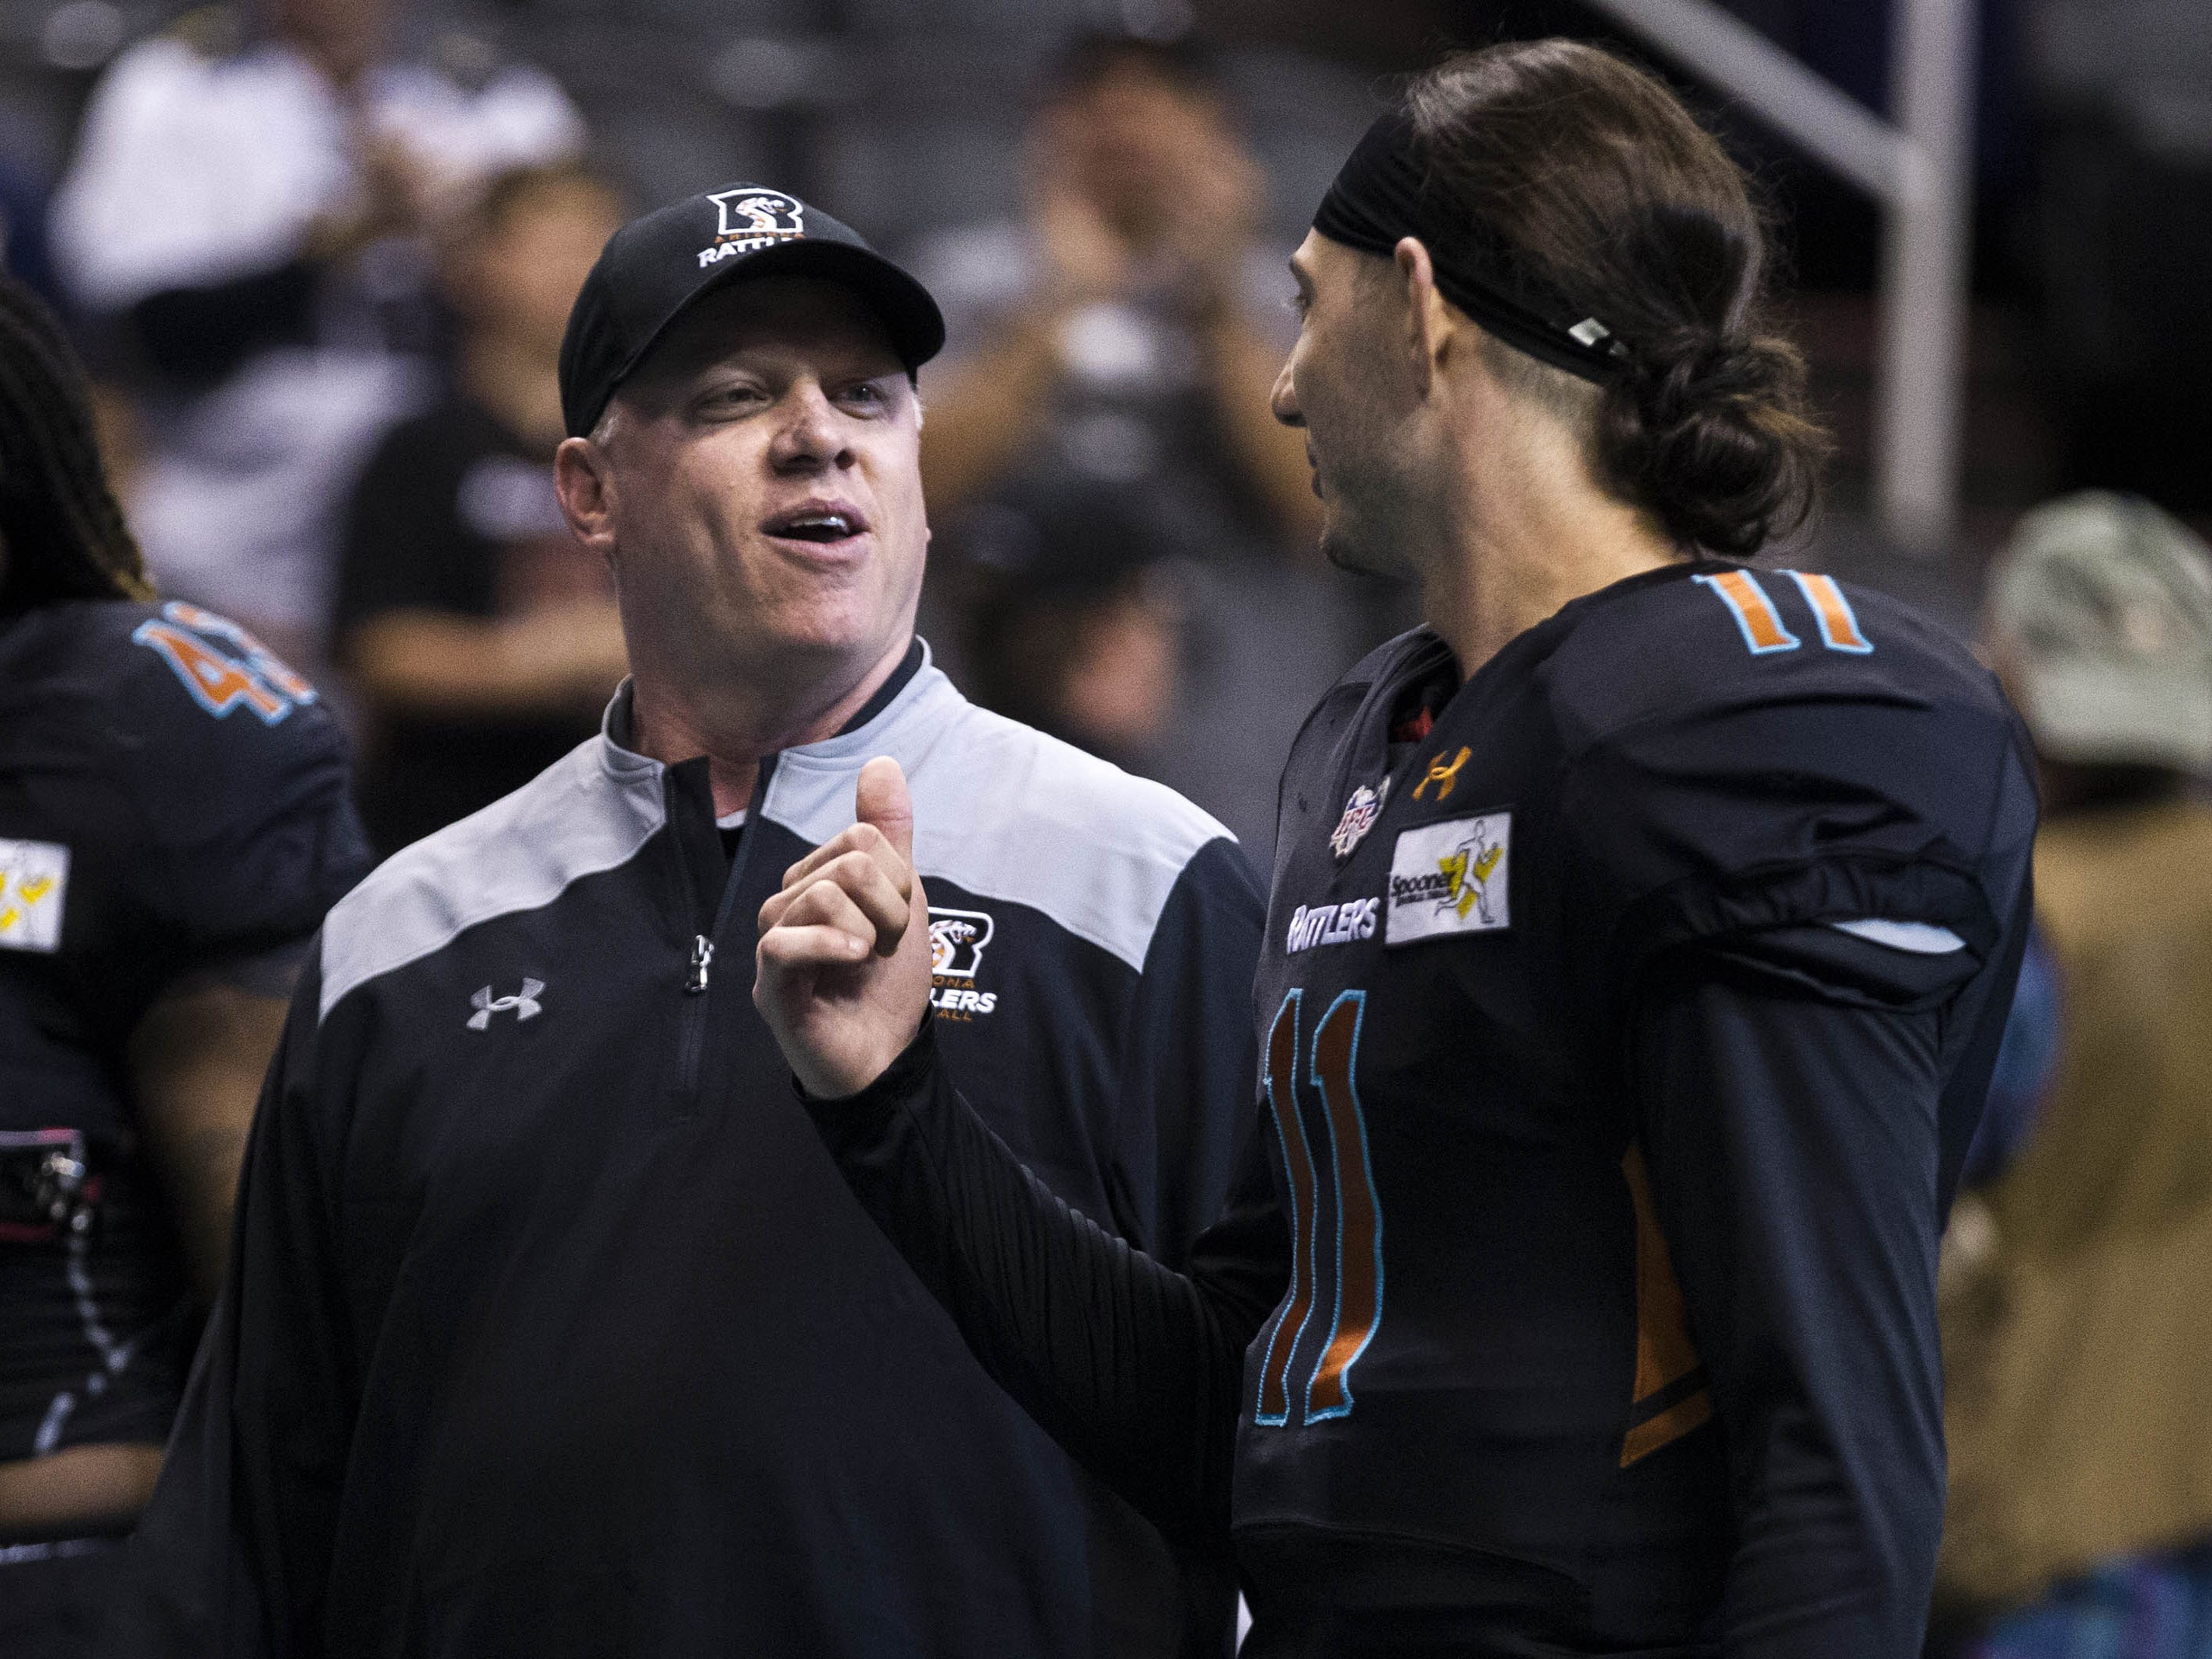 Arizona Rattlers' head coach Kevin Guy talks to his quarterback Jeff Ziemba (11) before their game against the Cedar Rapids River Kings at Talking Stick Resort Arena in Phoenix, Sunday, March 3, 2019.